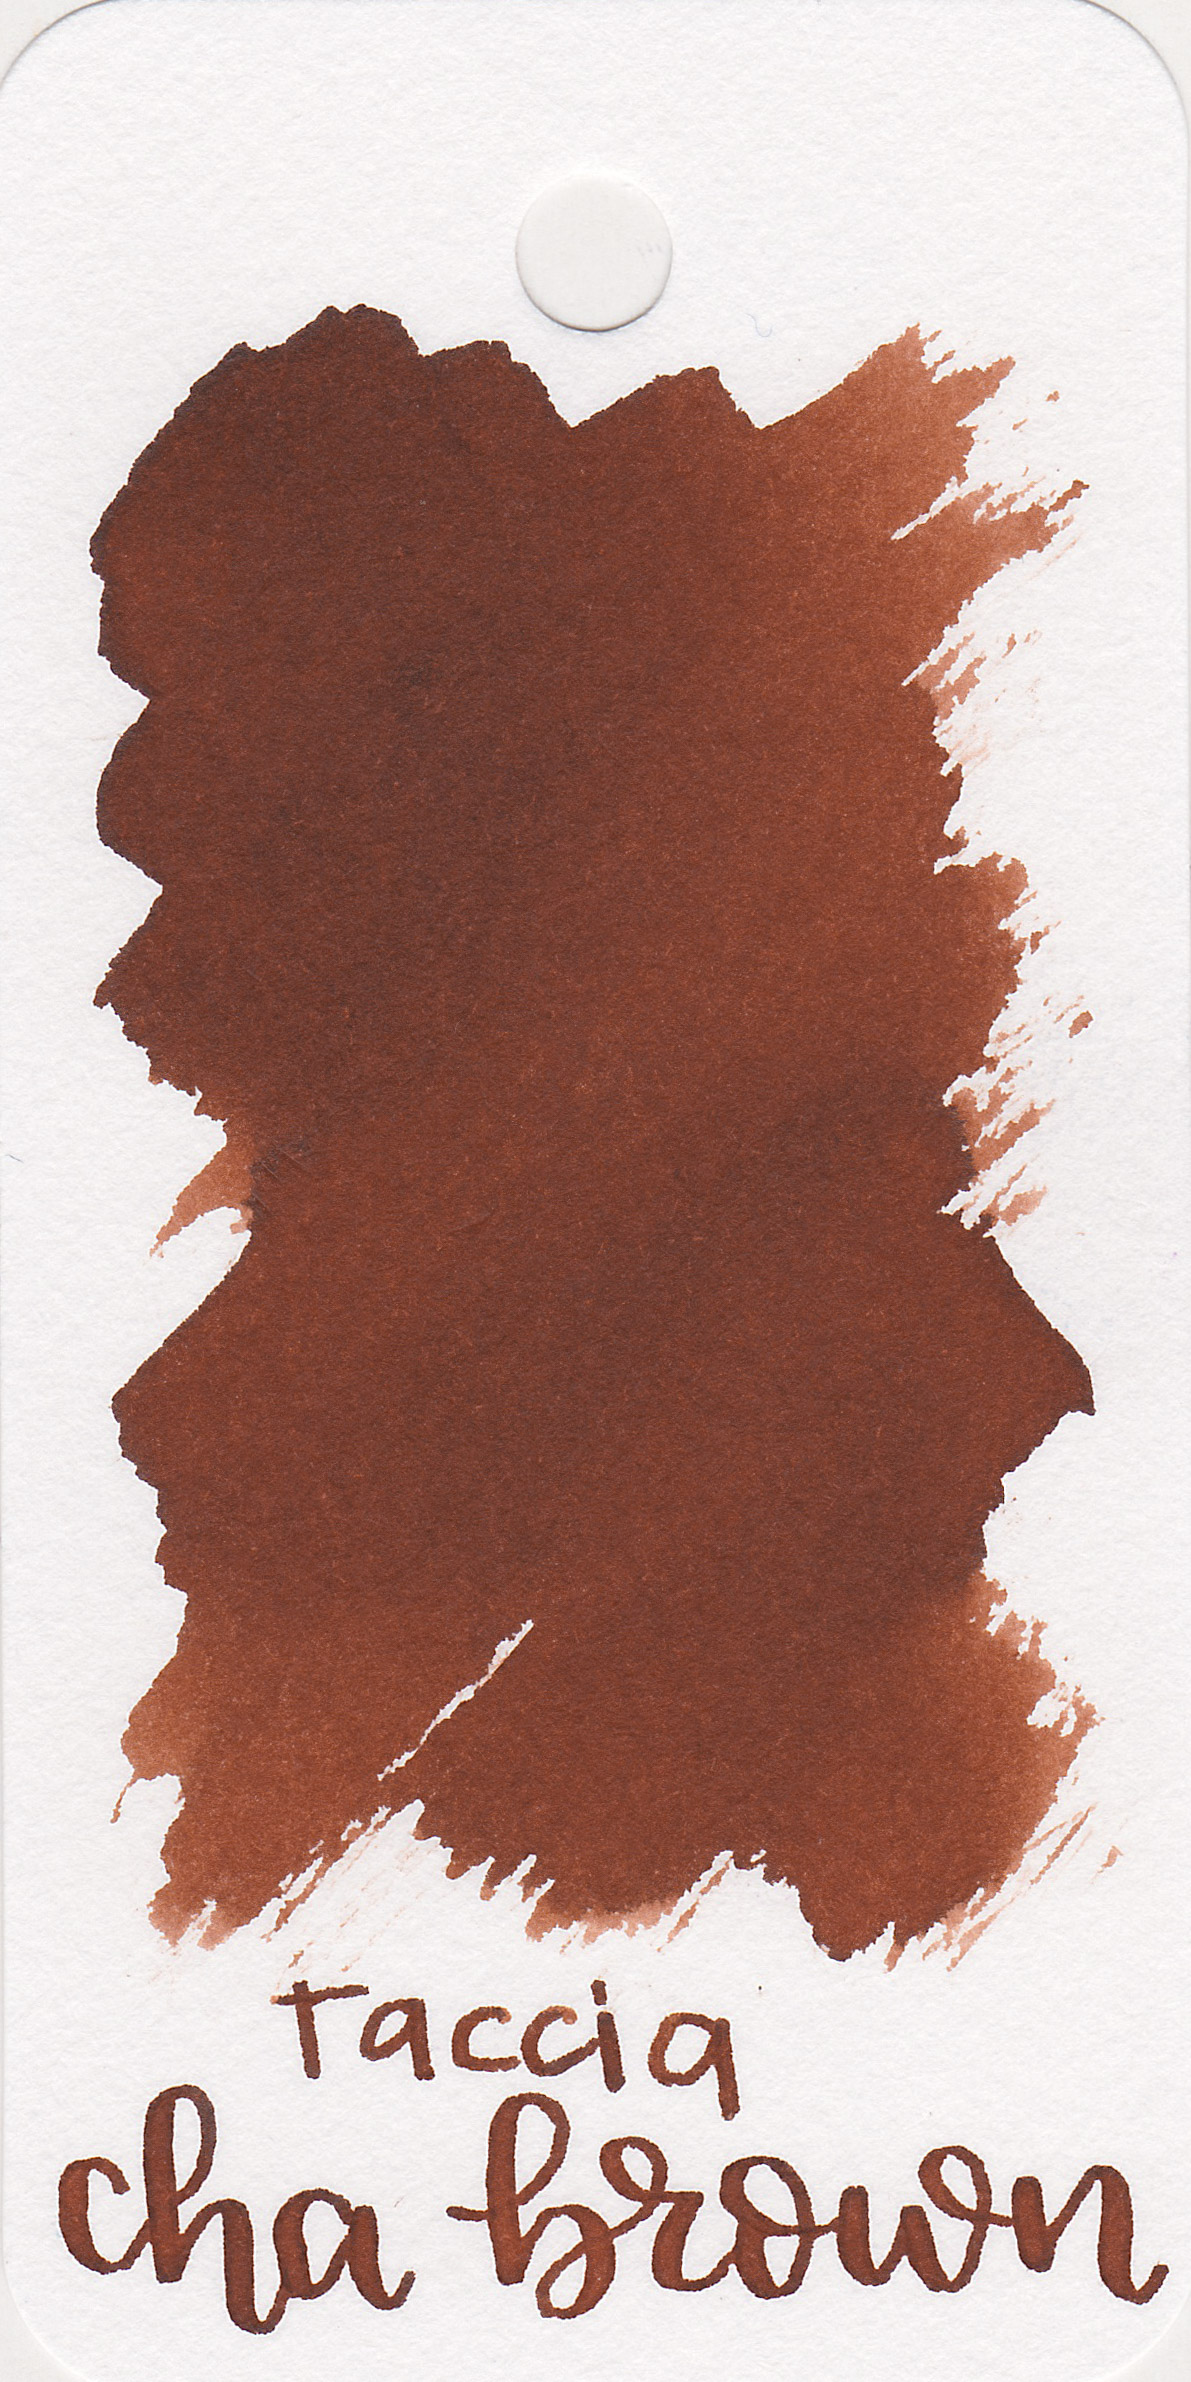 The color: - Cha Brown is a nice medium-dark brown with a bit of a red undertone.